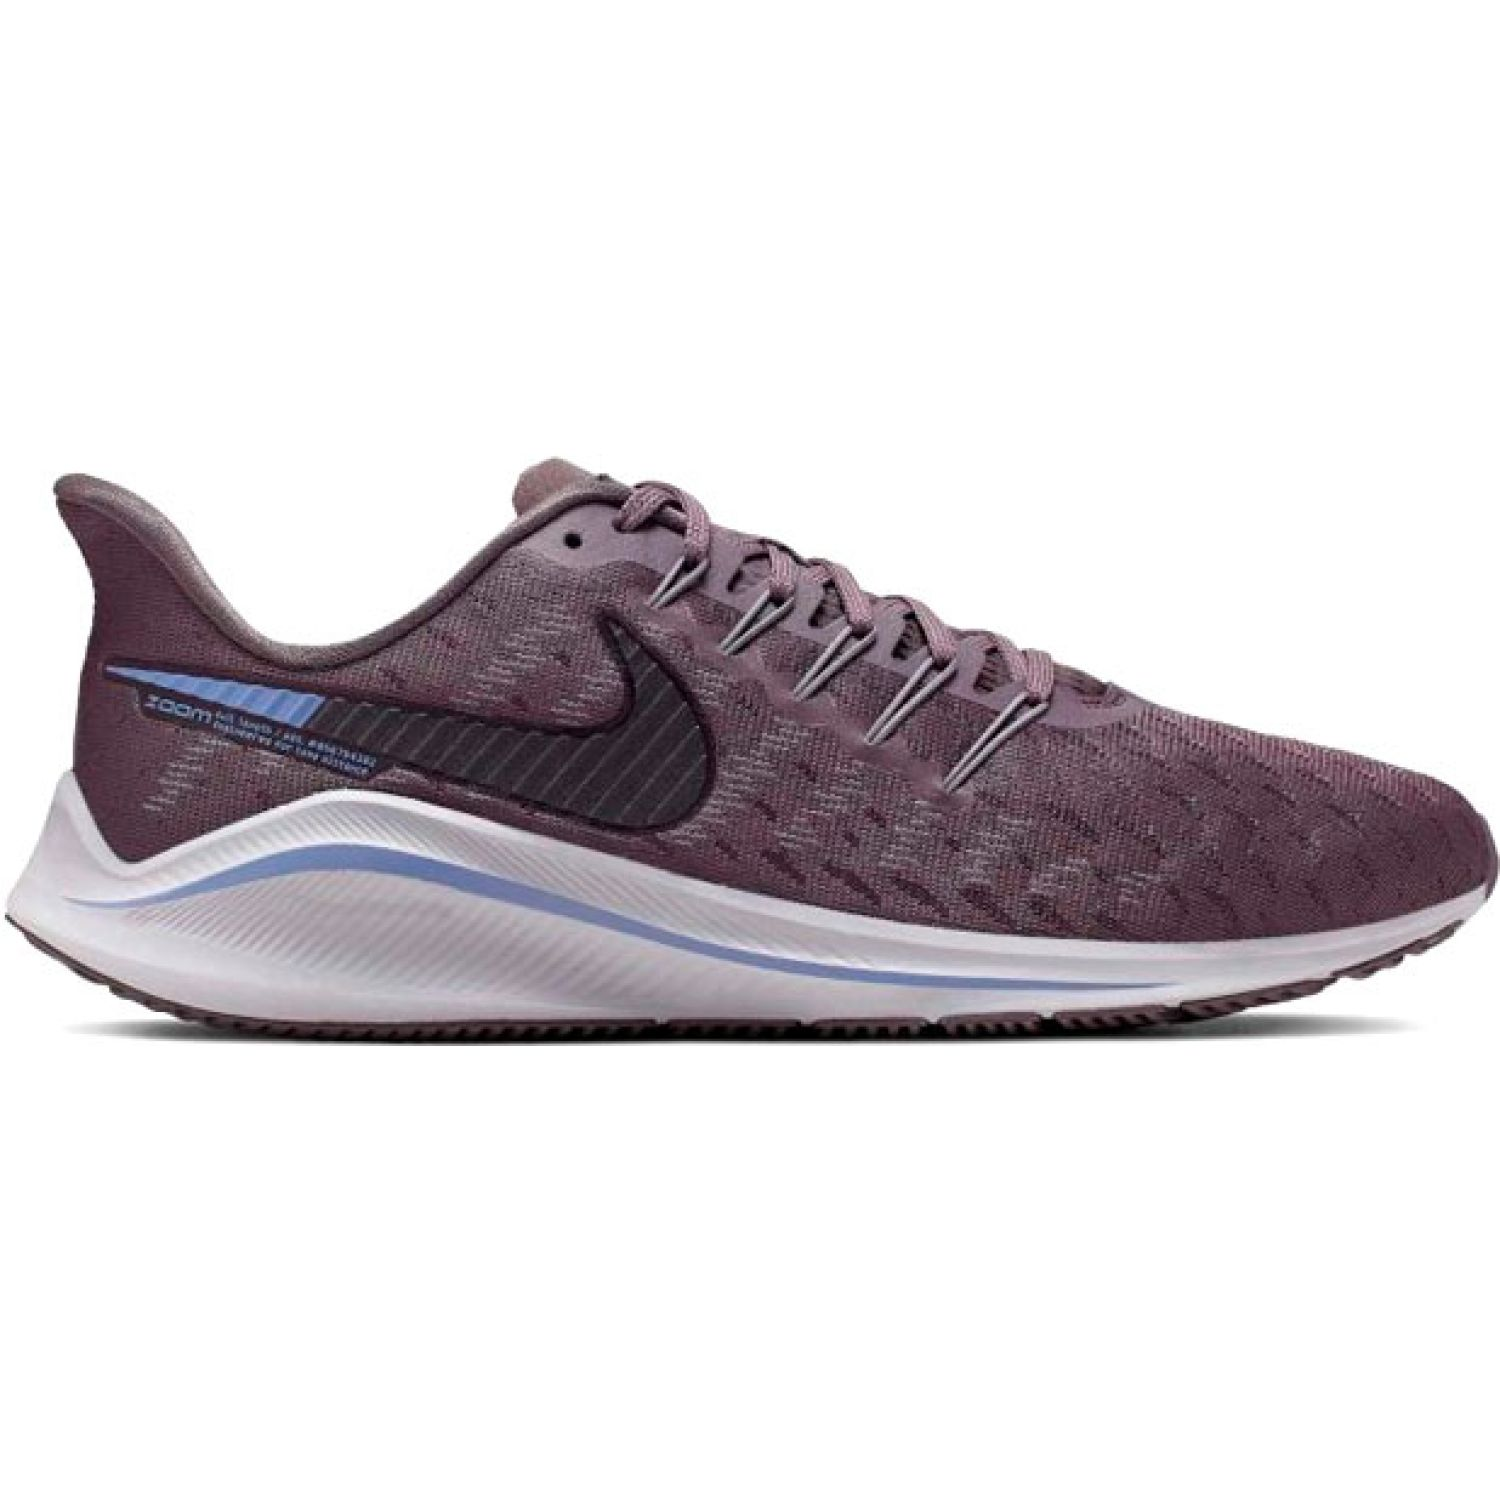 Nike NIKE AIR ZOOM VOMERO 14 Gris Trail Running